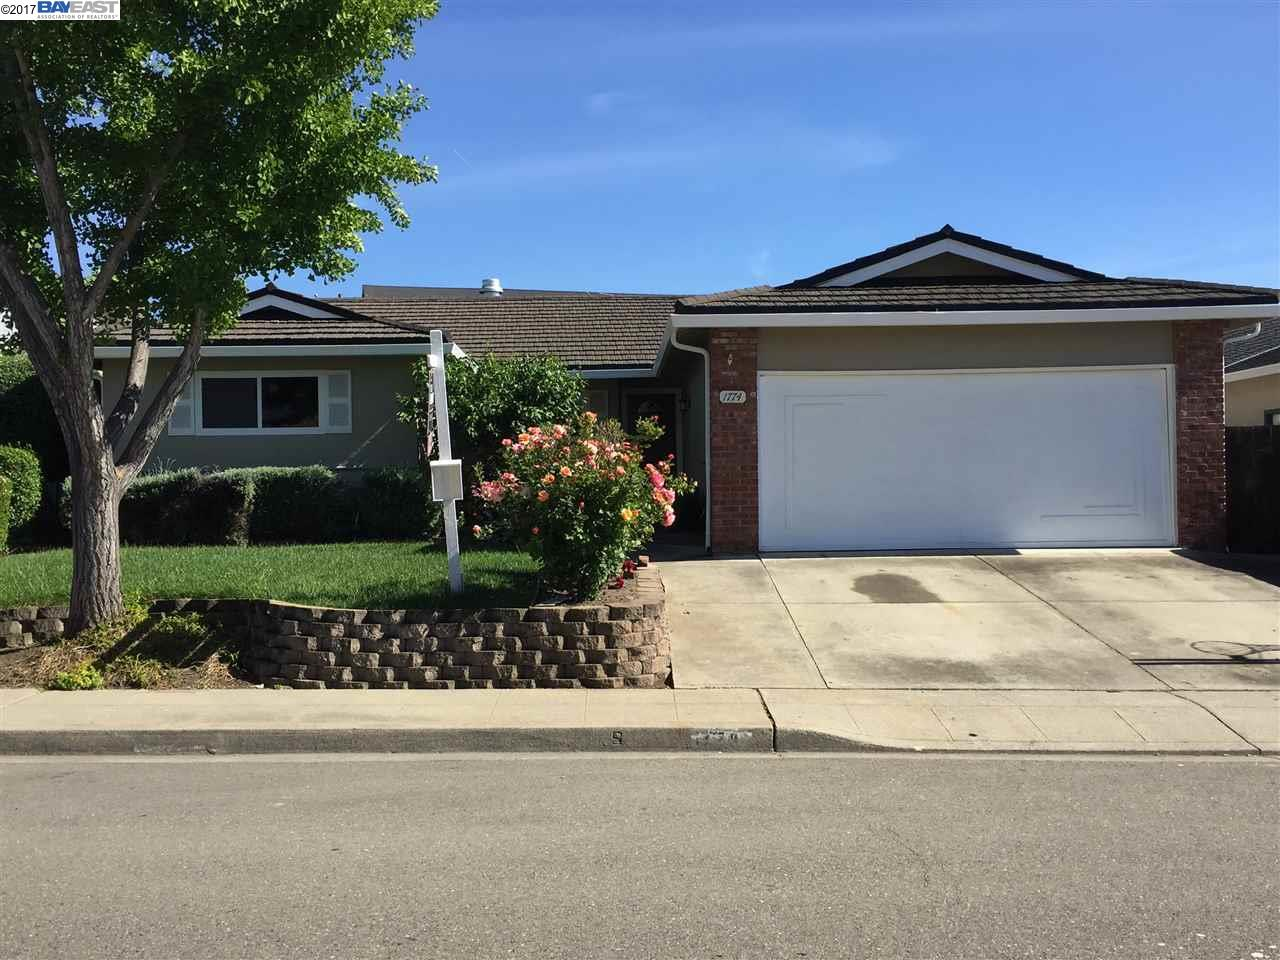 Single Family Home for Sale at 1774 Butano Milpitas, California 95035 United States